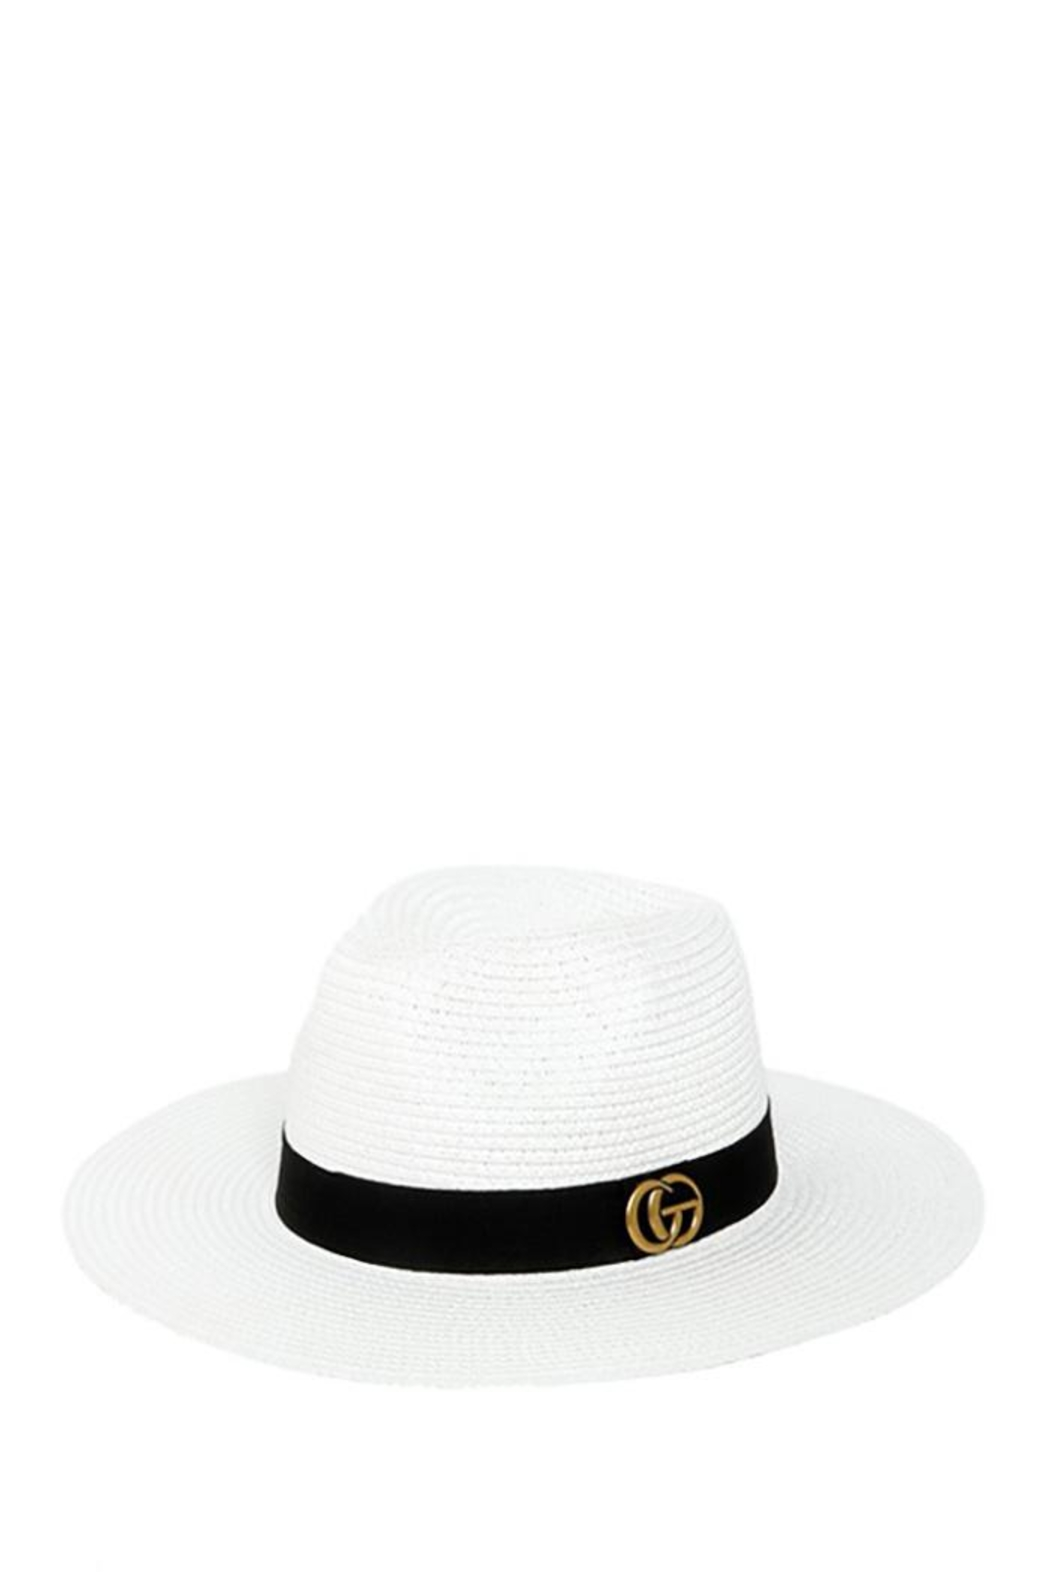 ICCO Designer Accent Fedora Straw Hat - Front Cropped Image